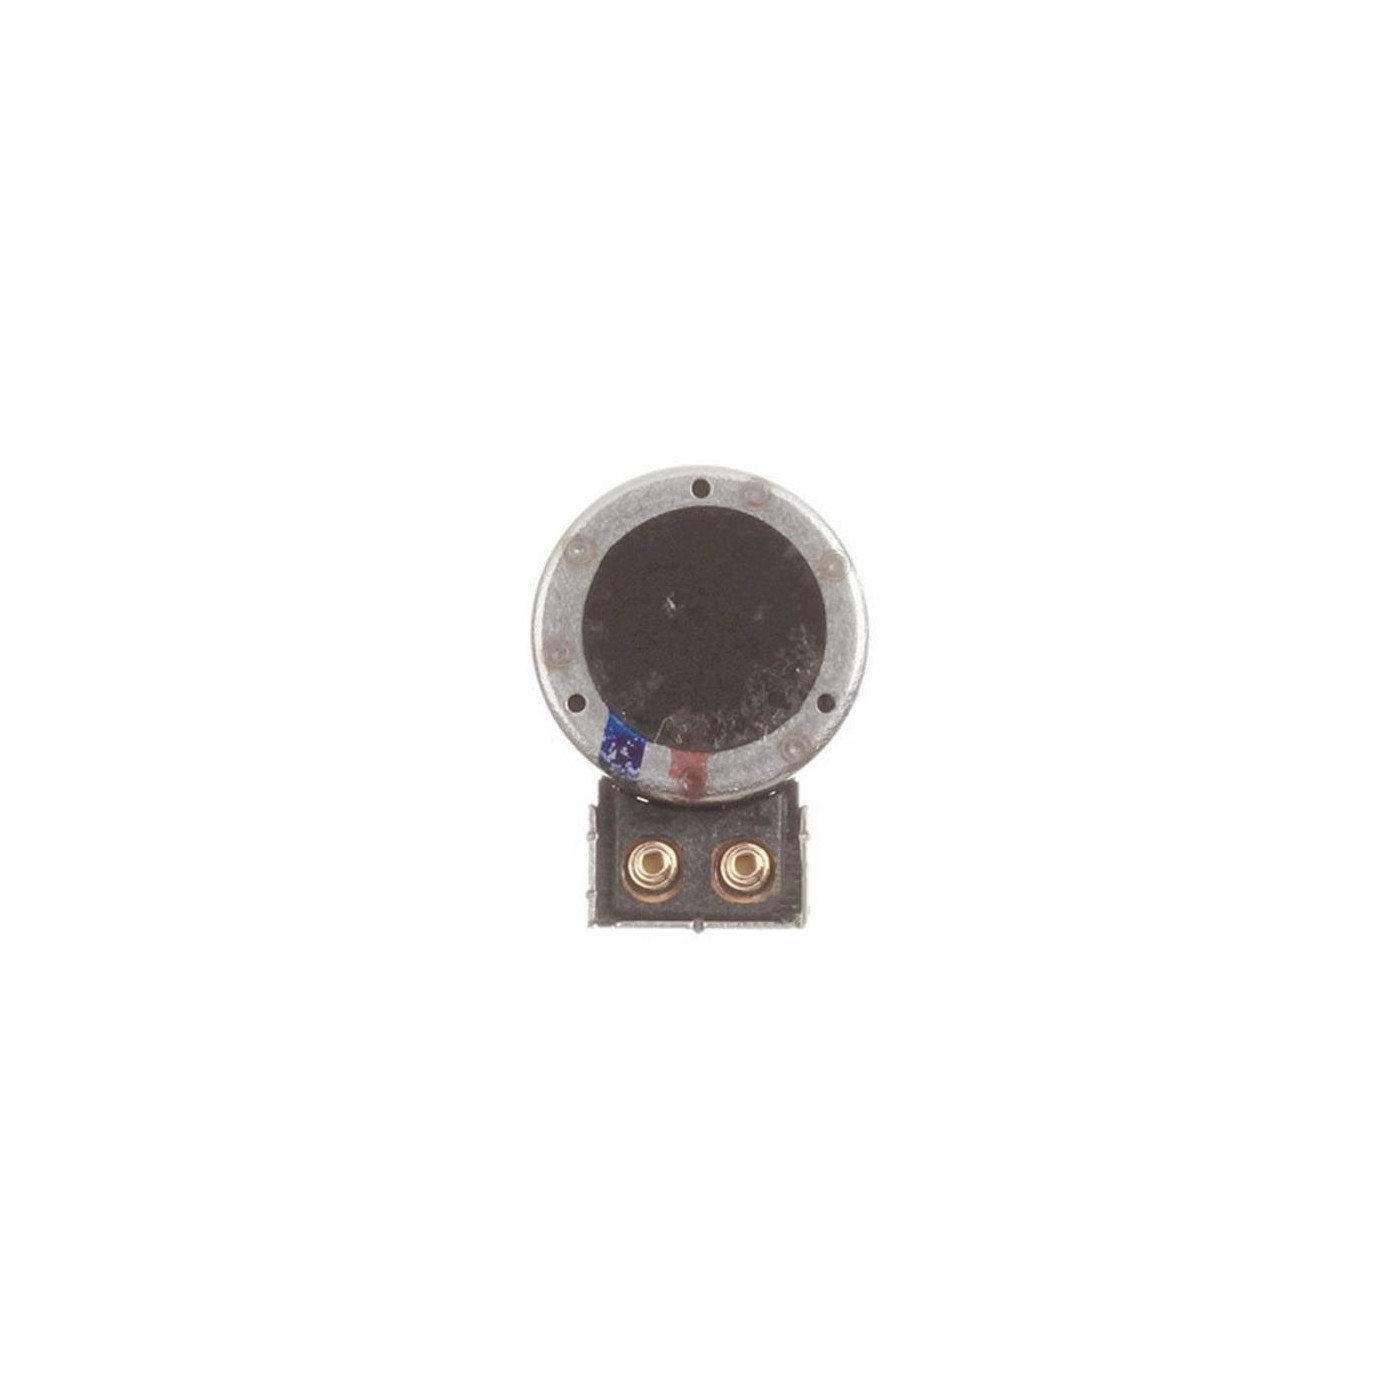 Vibration Motor for Google Nexus 5 / D820 Replacement